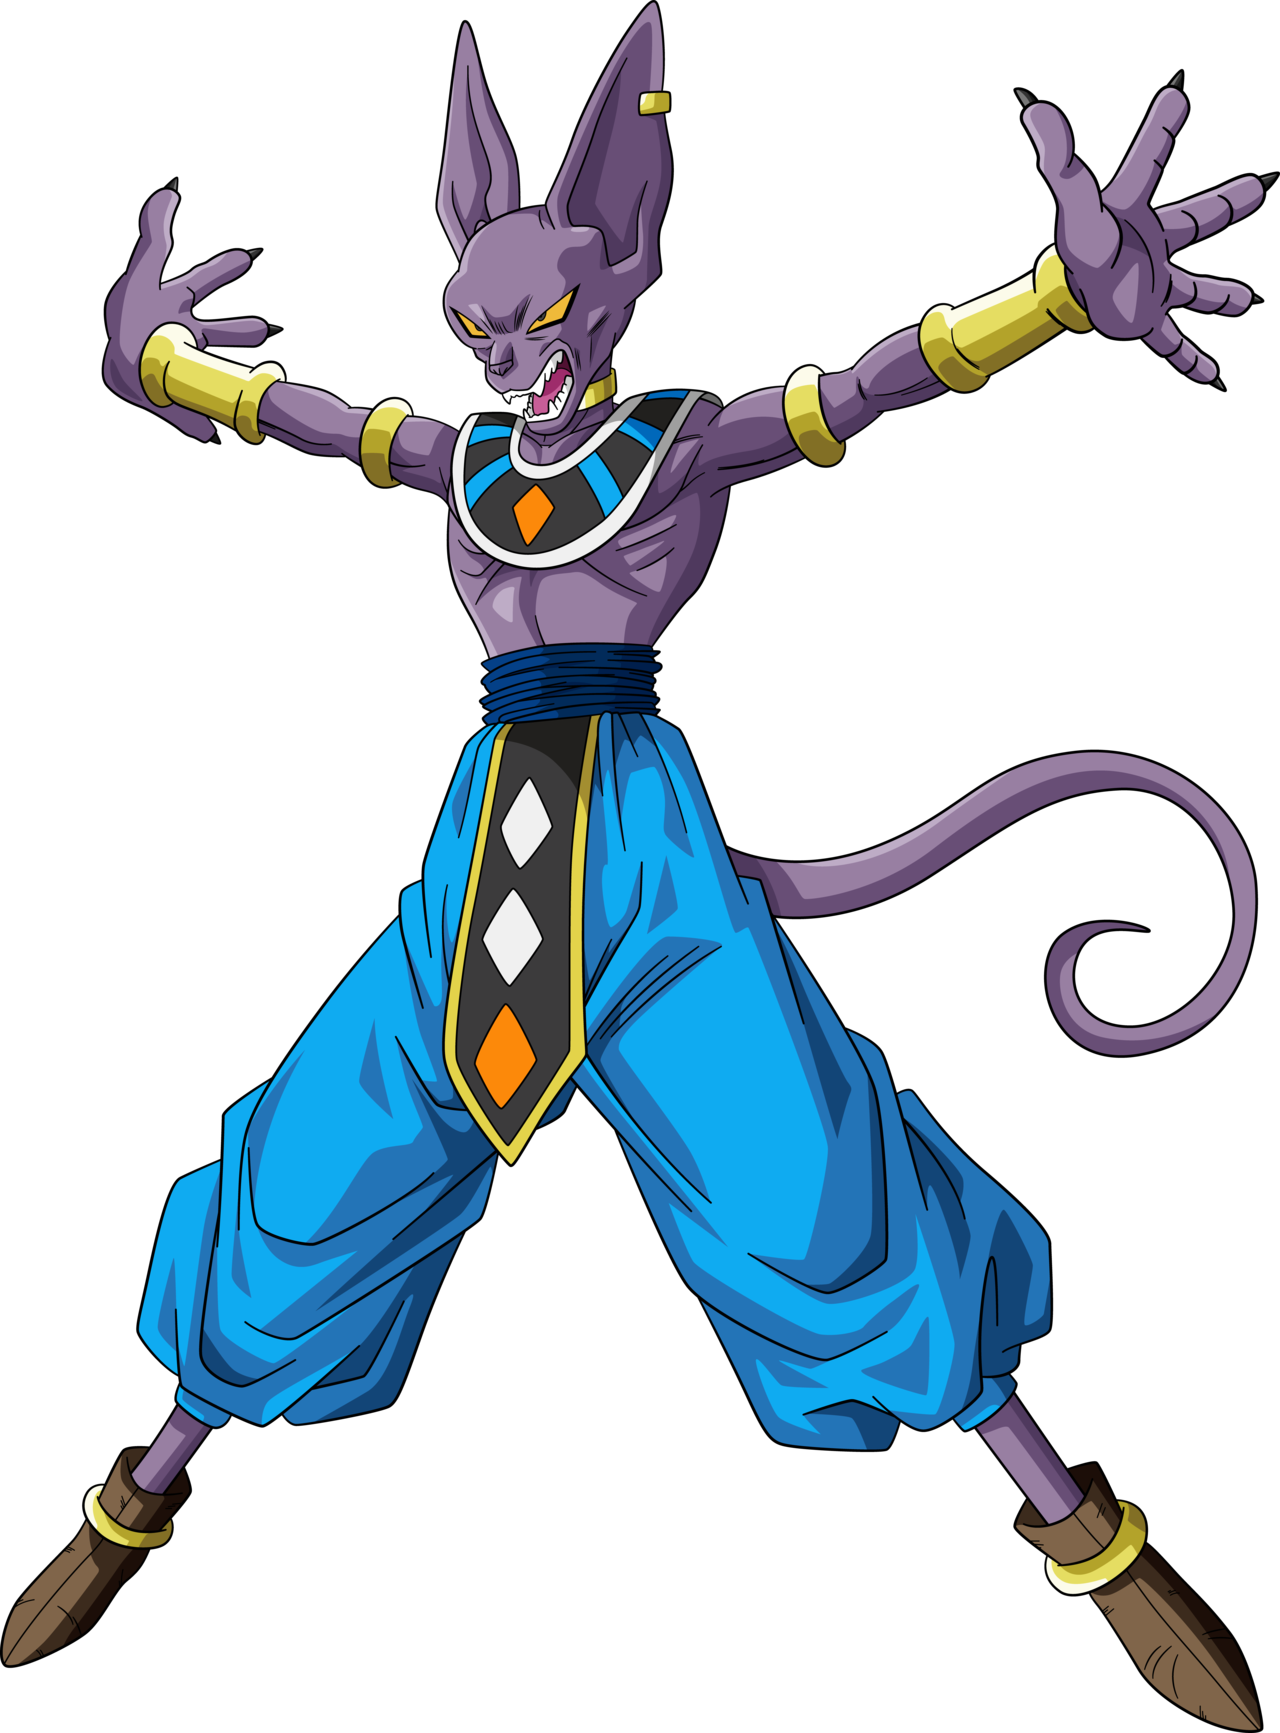 beerus transparent aura